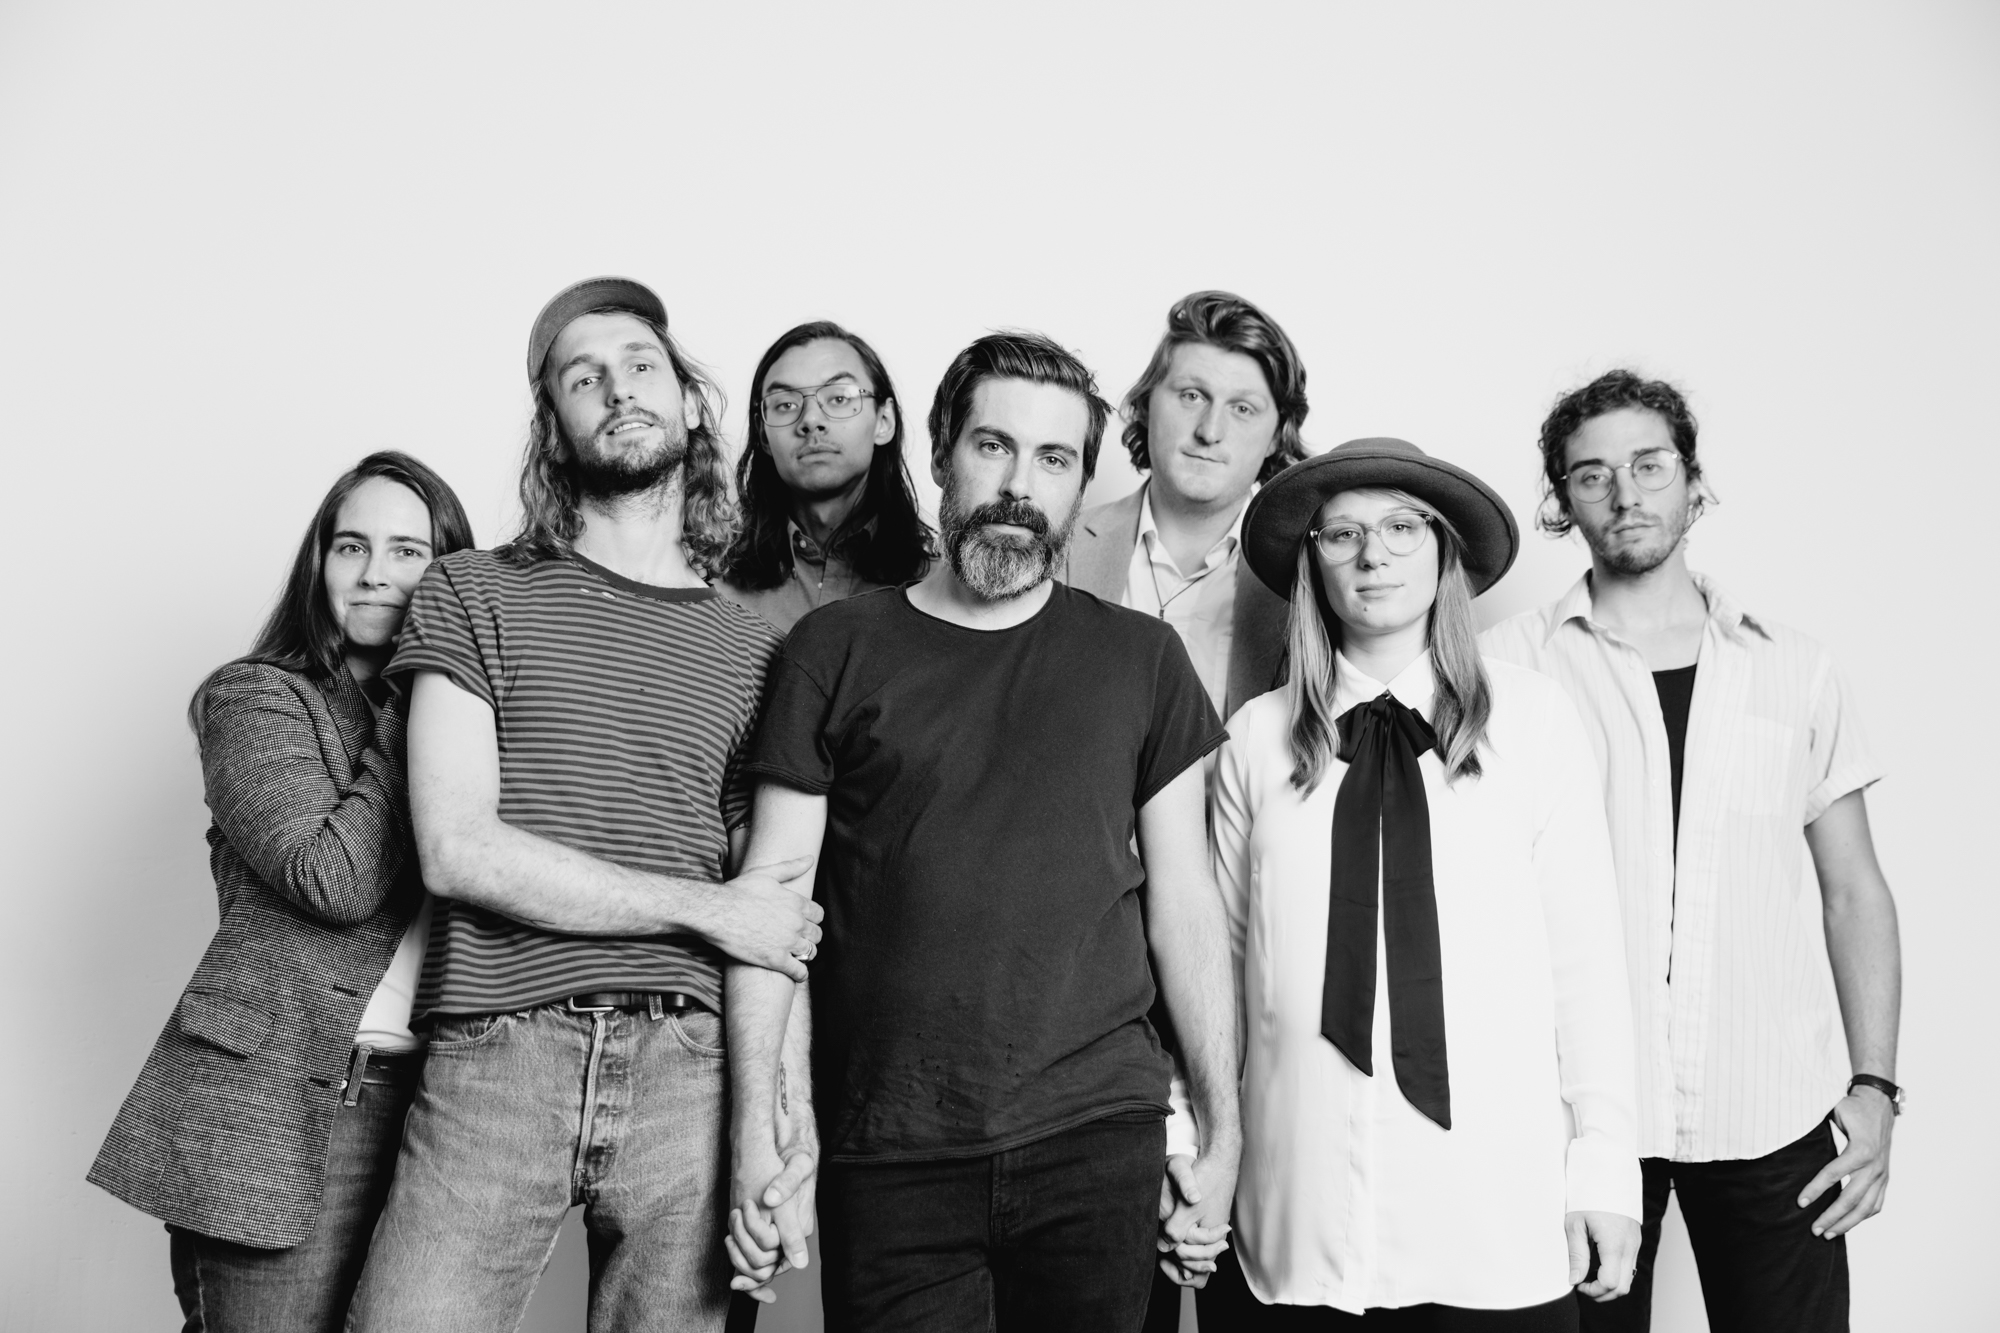 A music portrait of a band in a photography and videography studio in Bloomington, Indiana.